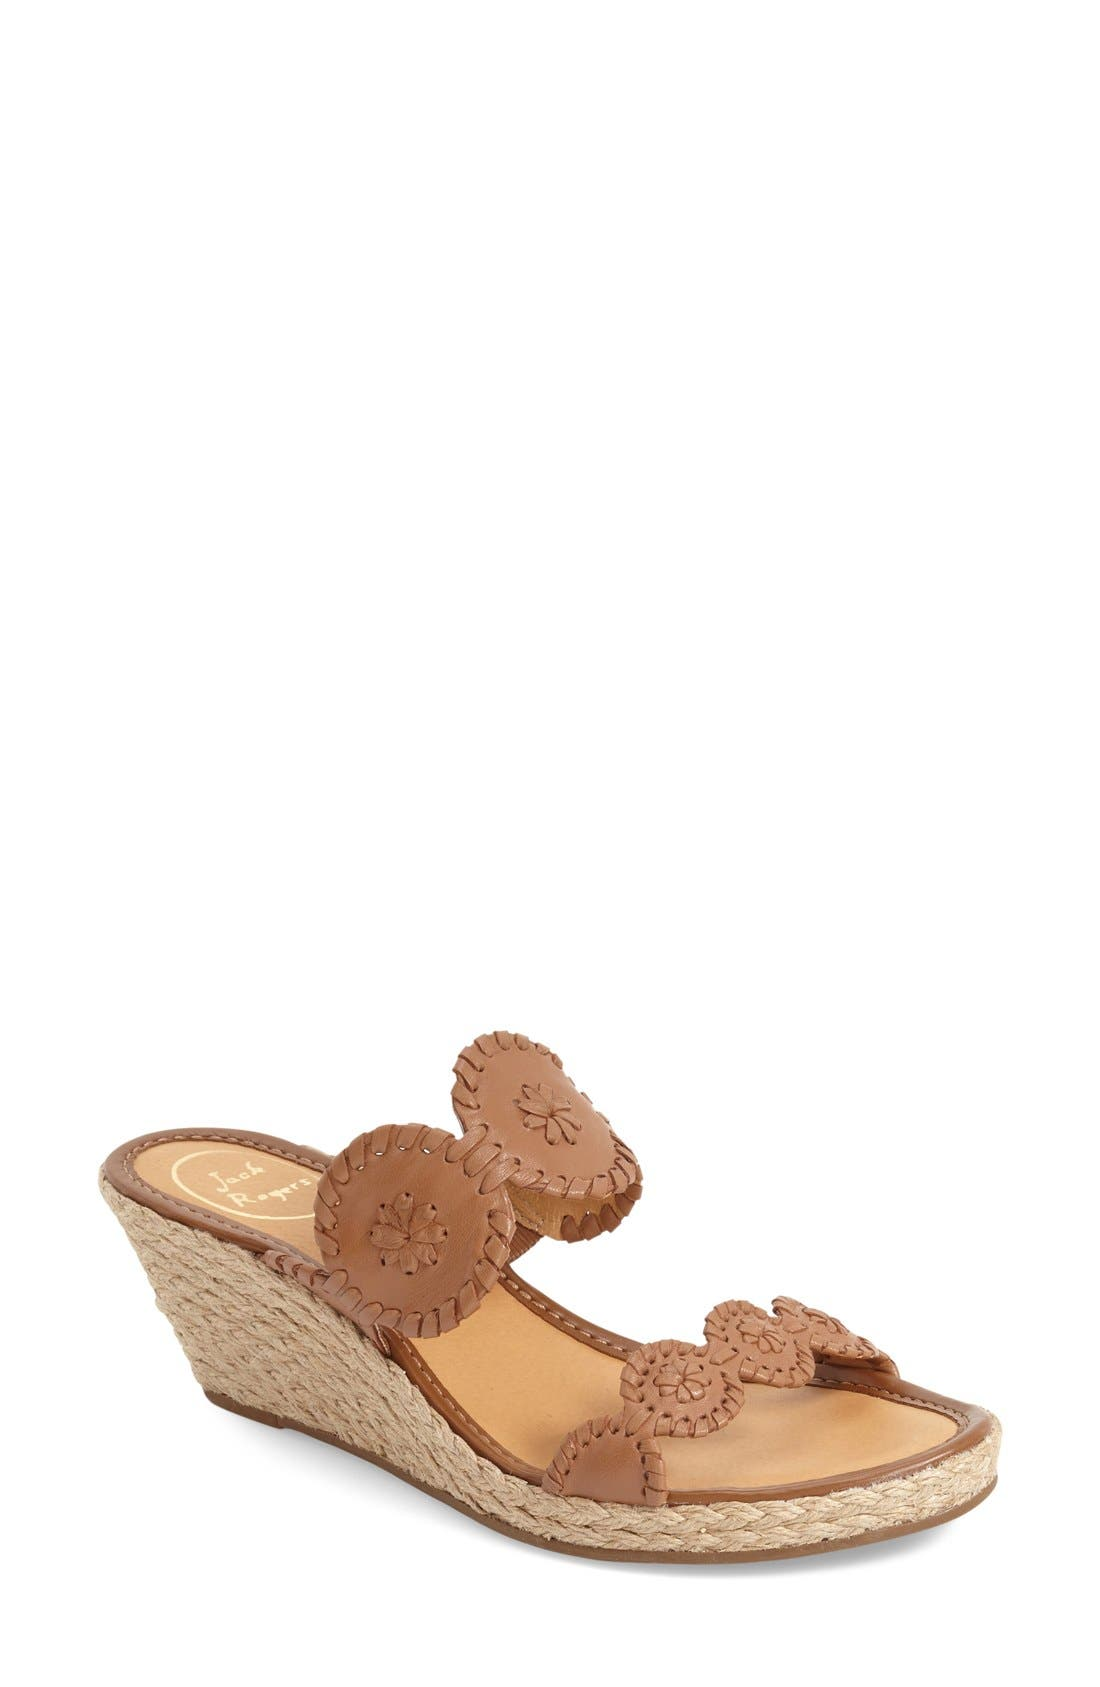 Main Image - Jack Rogers 'Shelby' Whipstitched Wedge Sandal (Women)